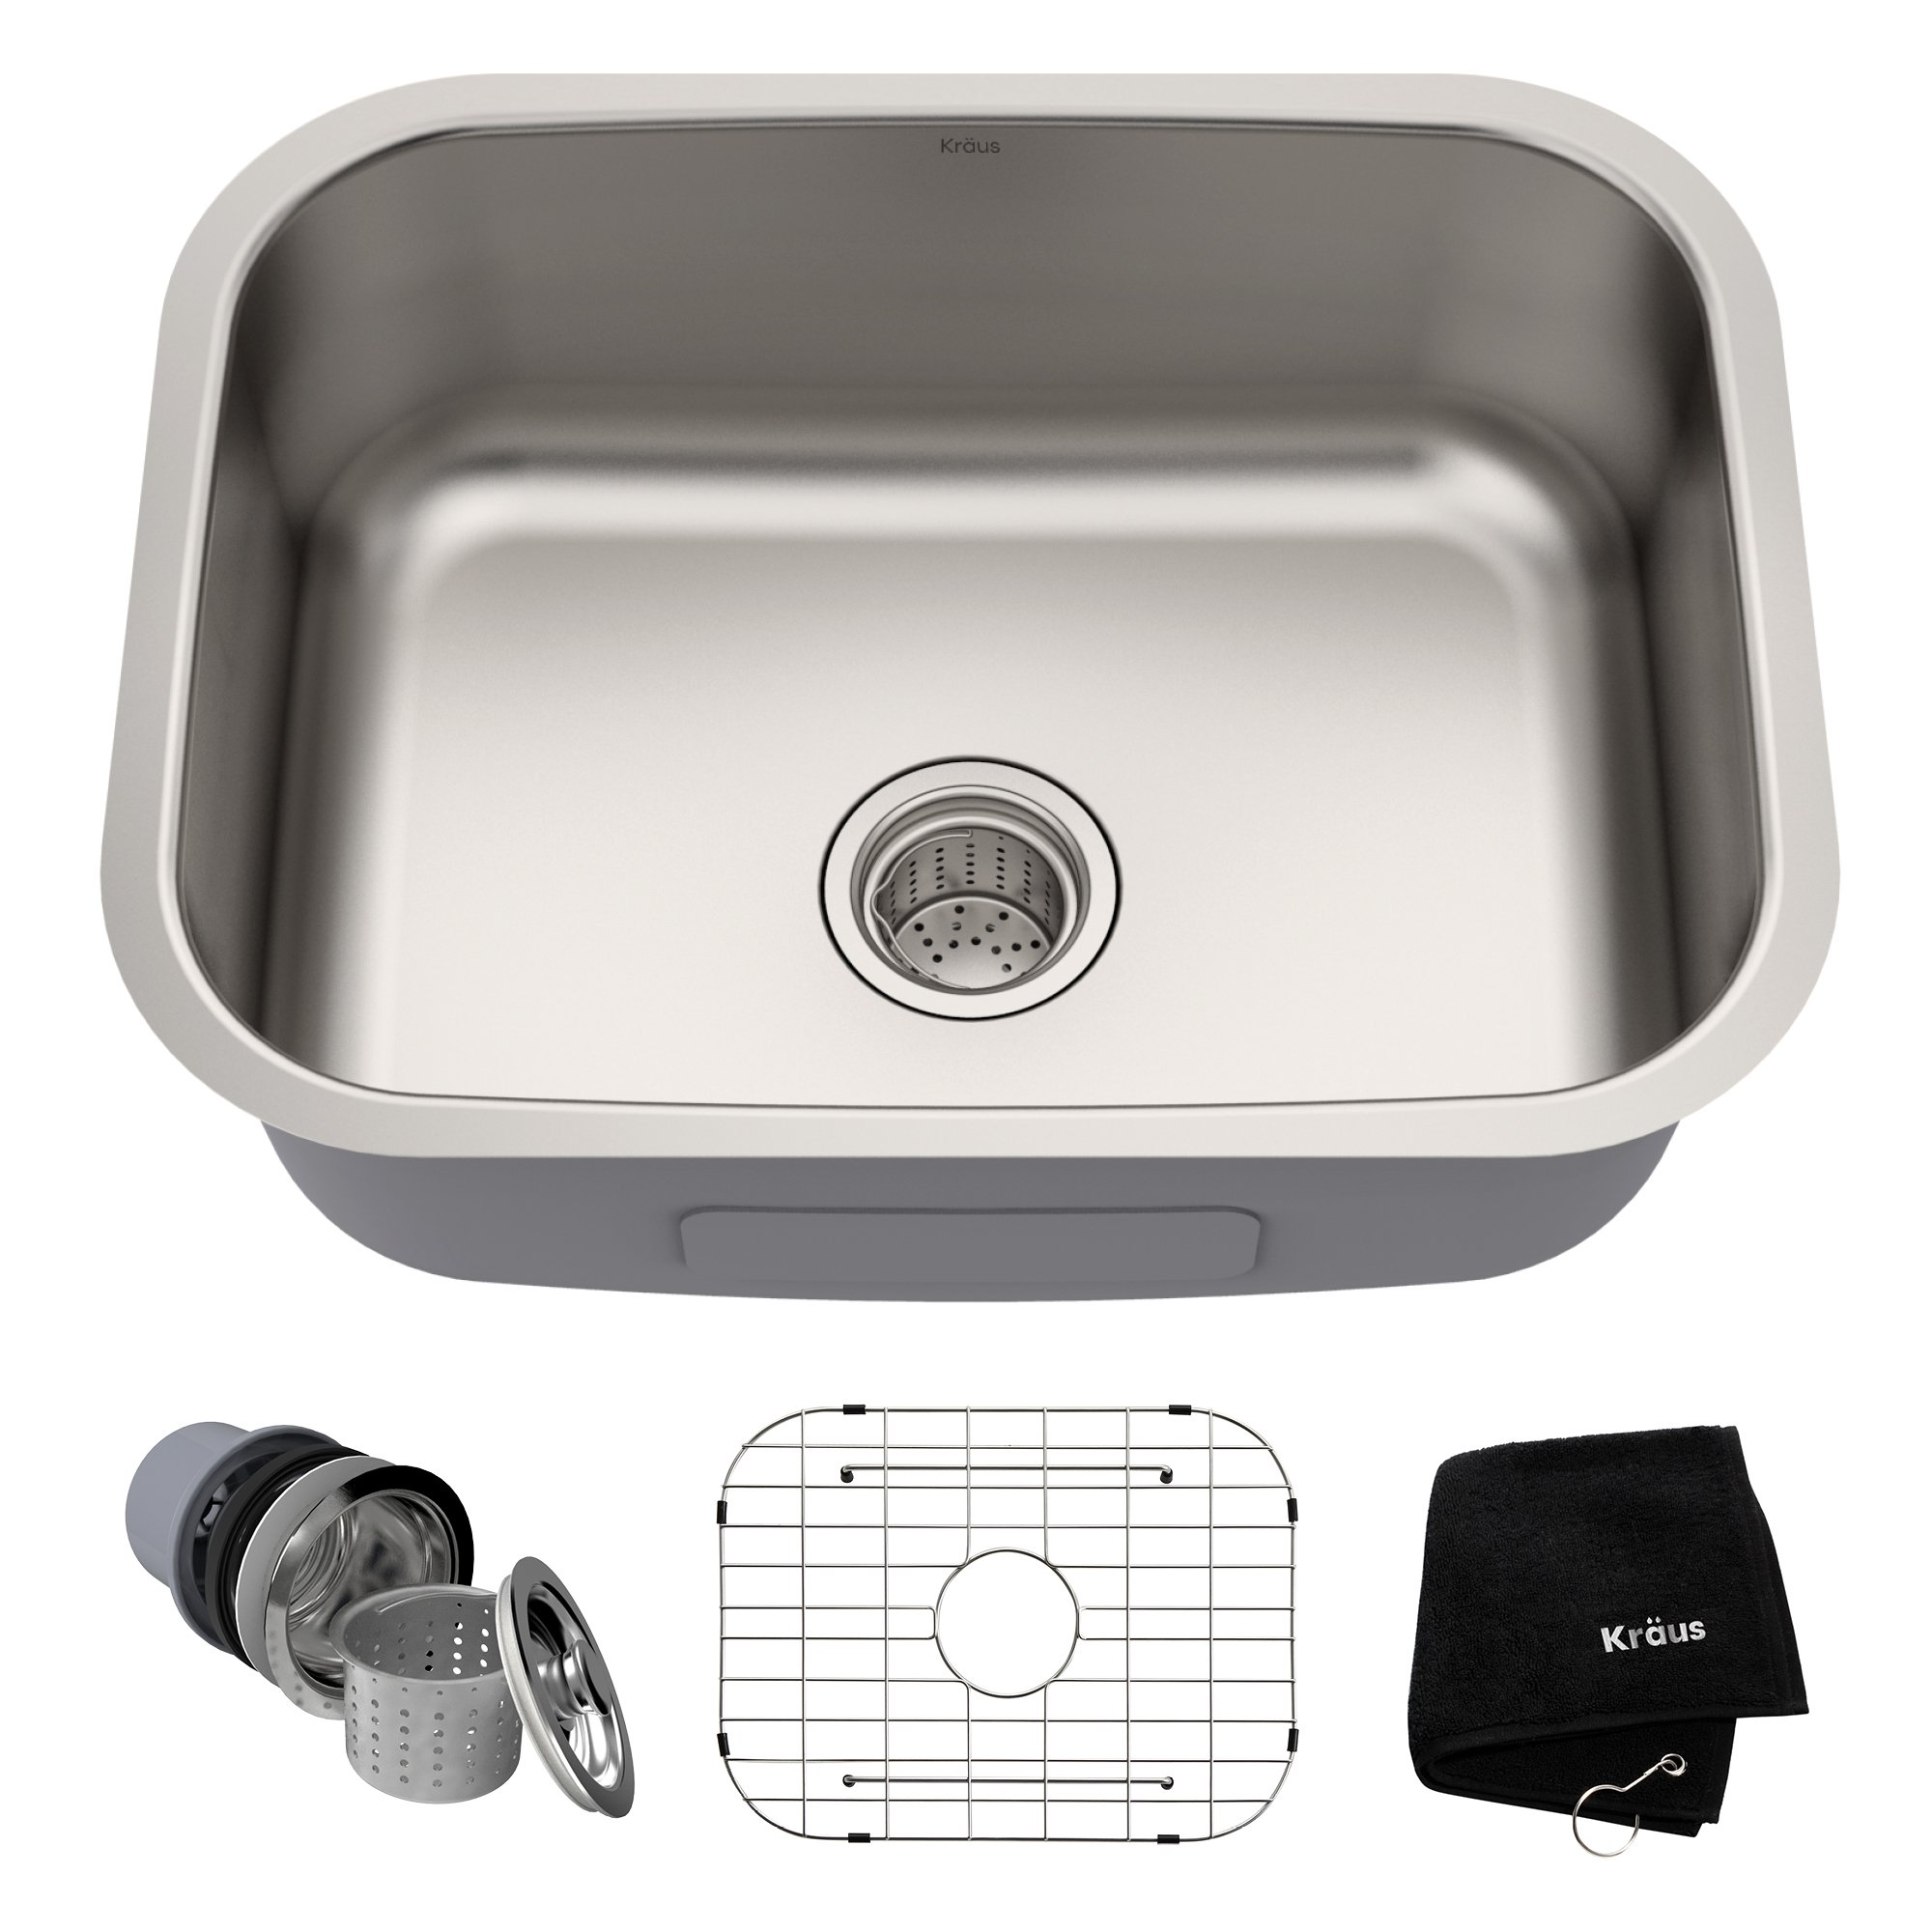 Kraus KBU12 23 inch Undermount Single Bowl 16 gauge Stainless Steel Kitchen Sink by Kraus (Image #2)